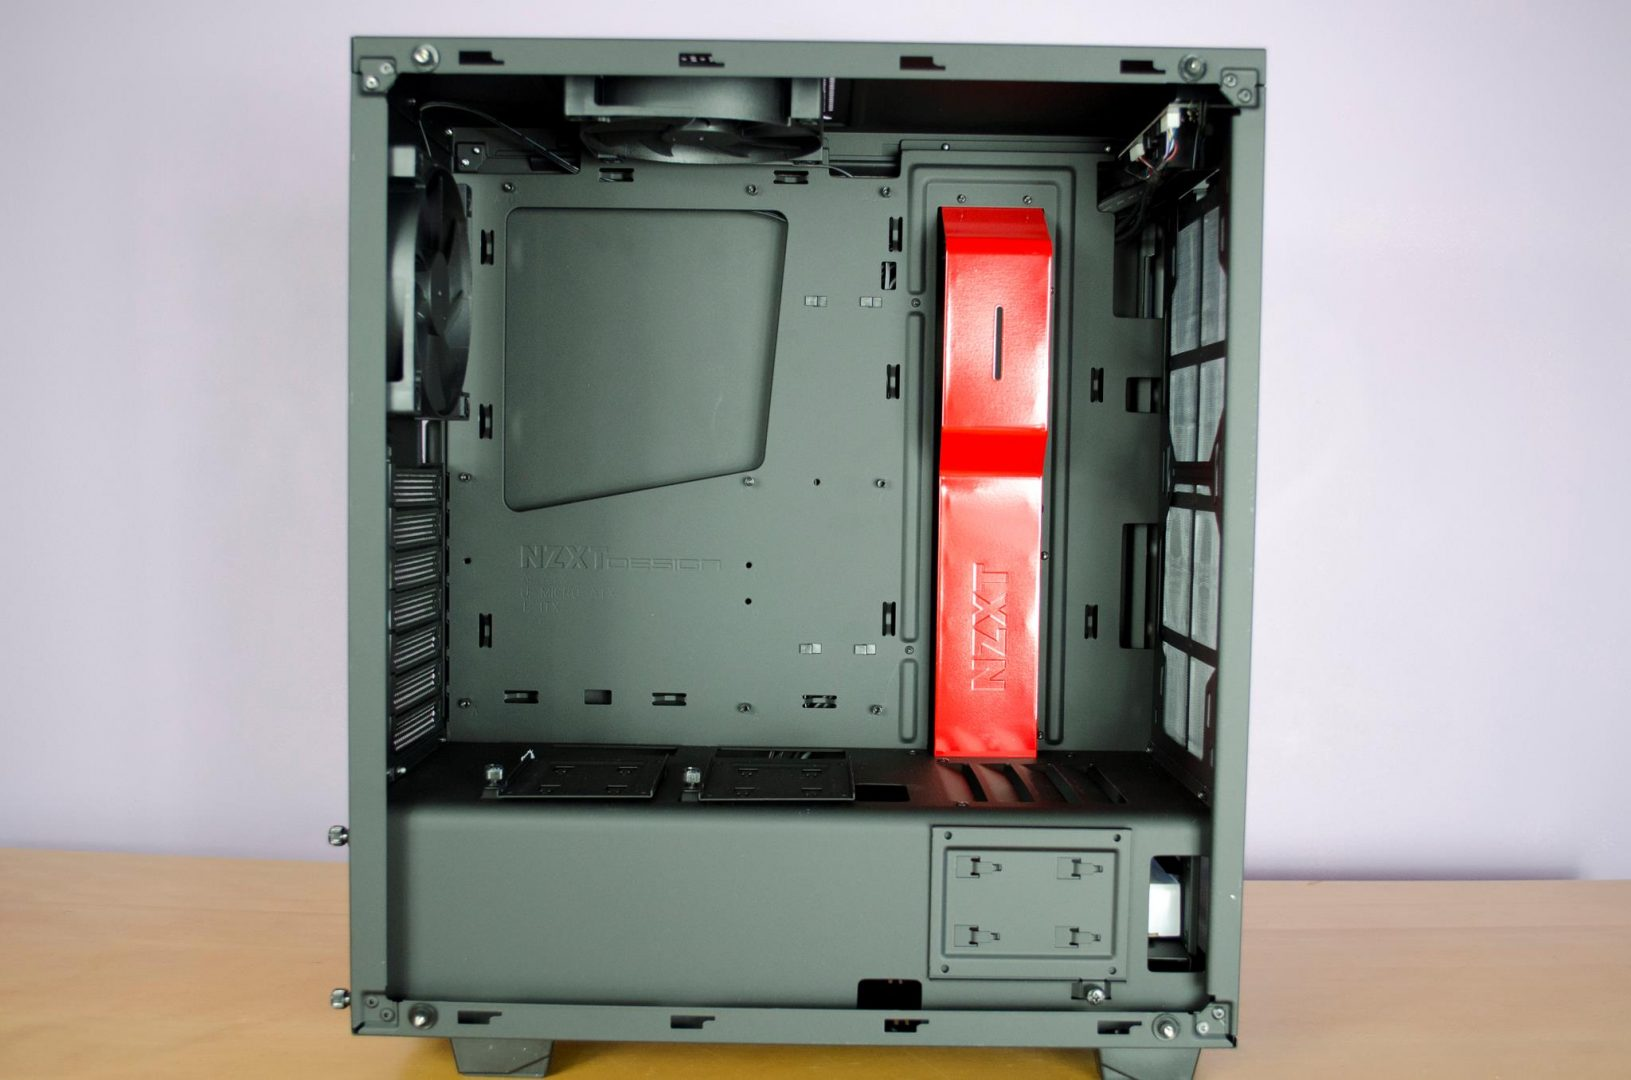 nzxt s340 elite pc case_8